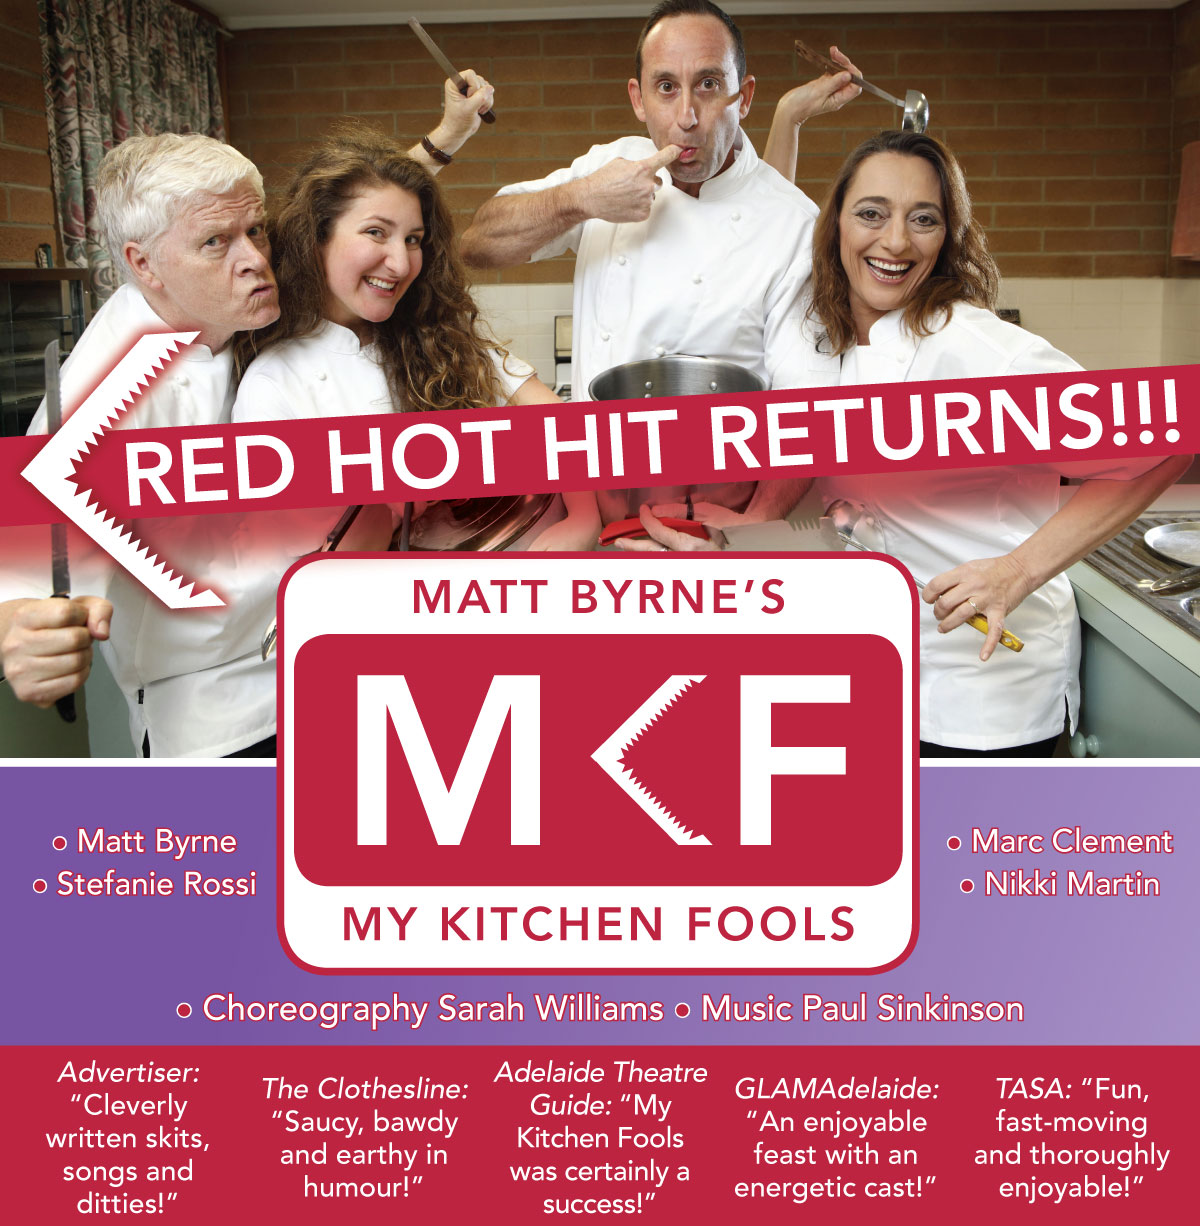 My Kitchen Fools returns for one night only